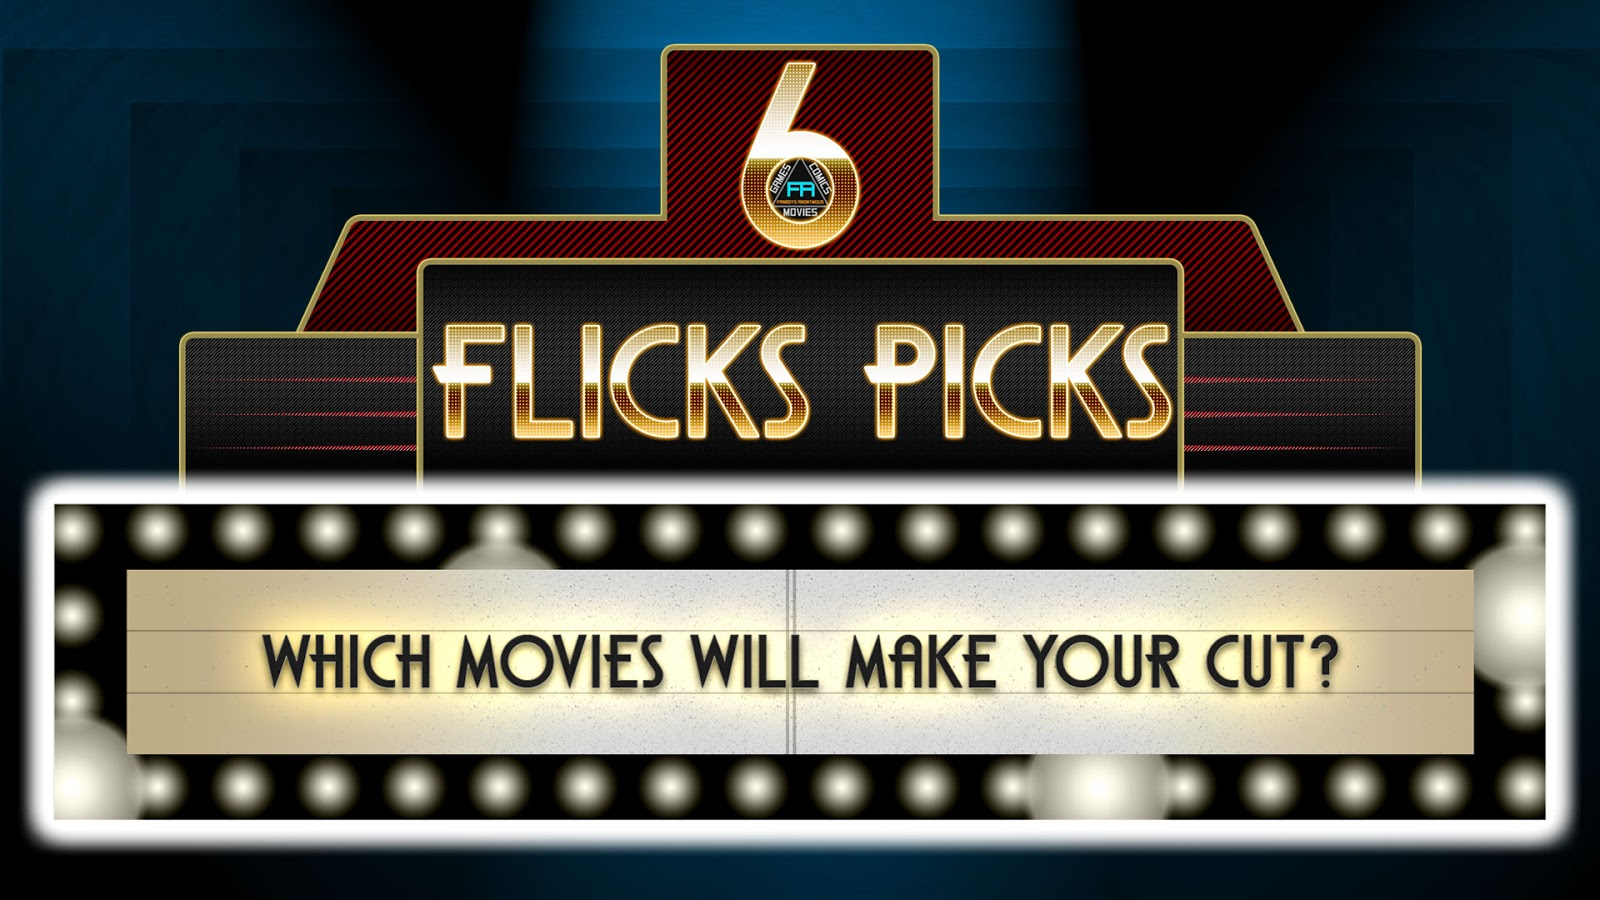 What movies are coming out February 2016 6 Flicks Picks